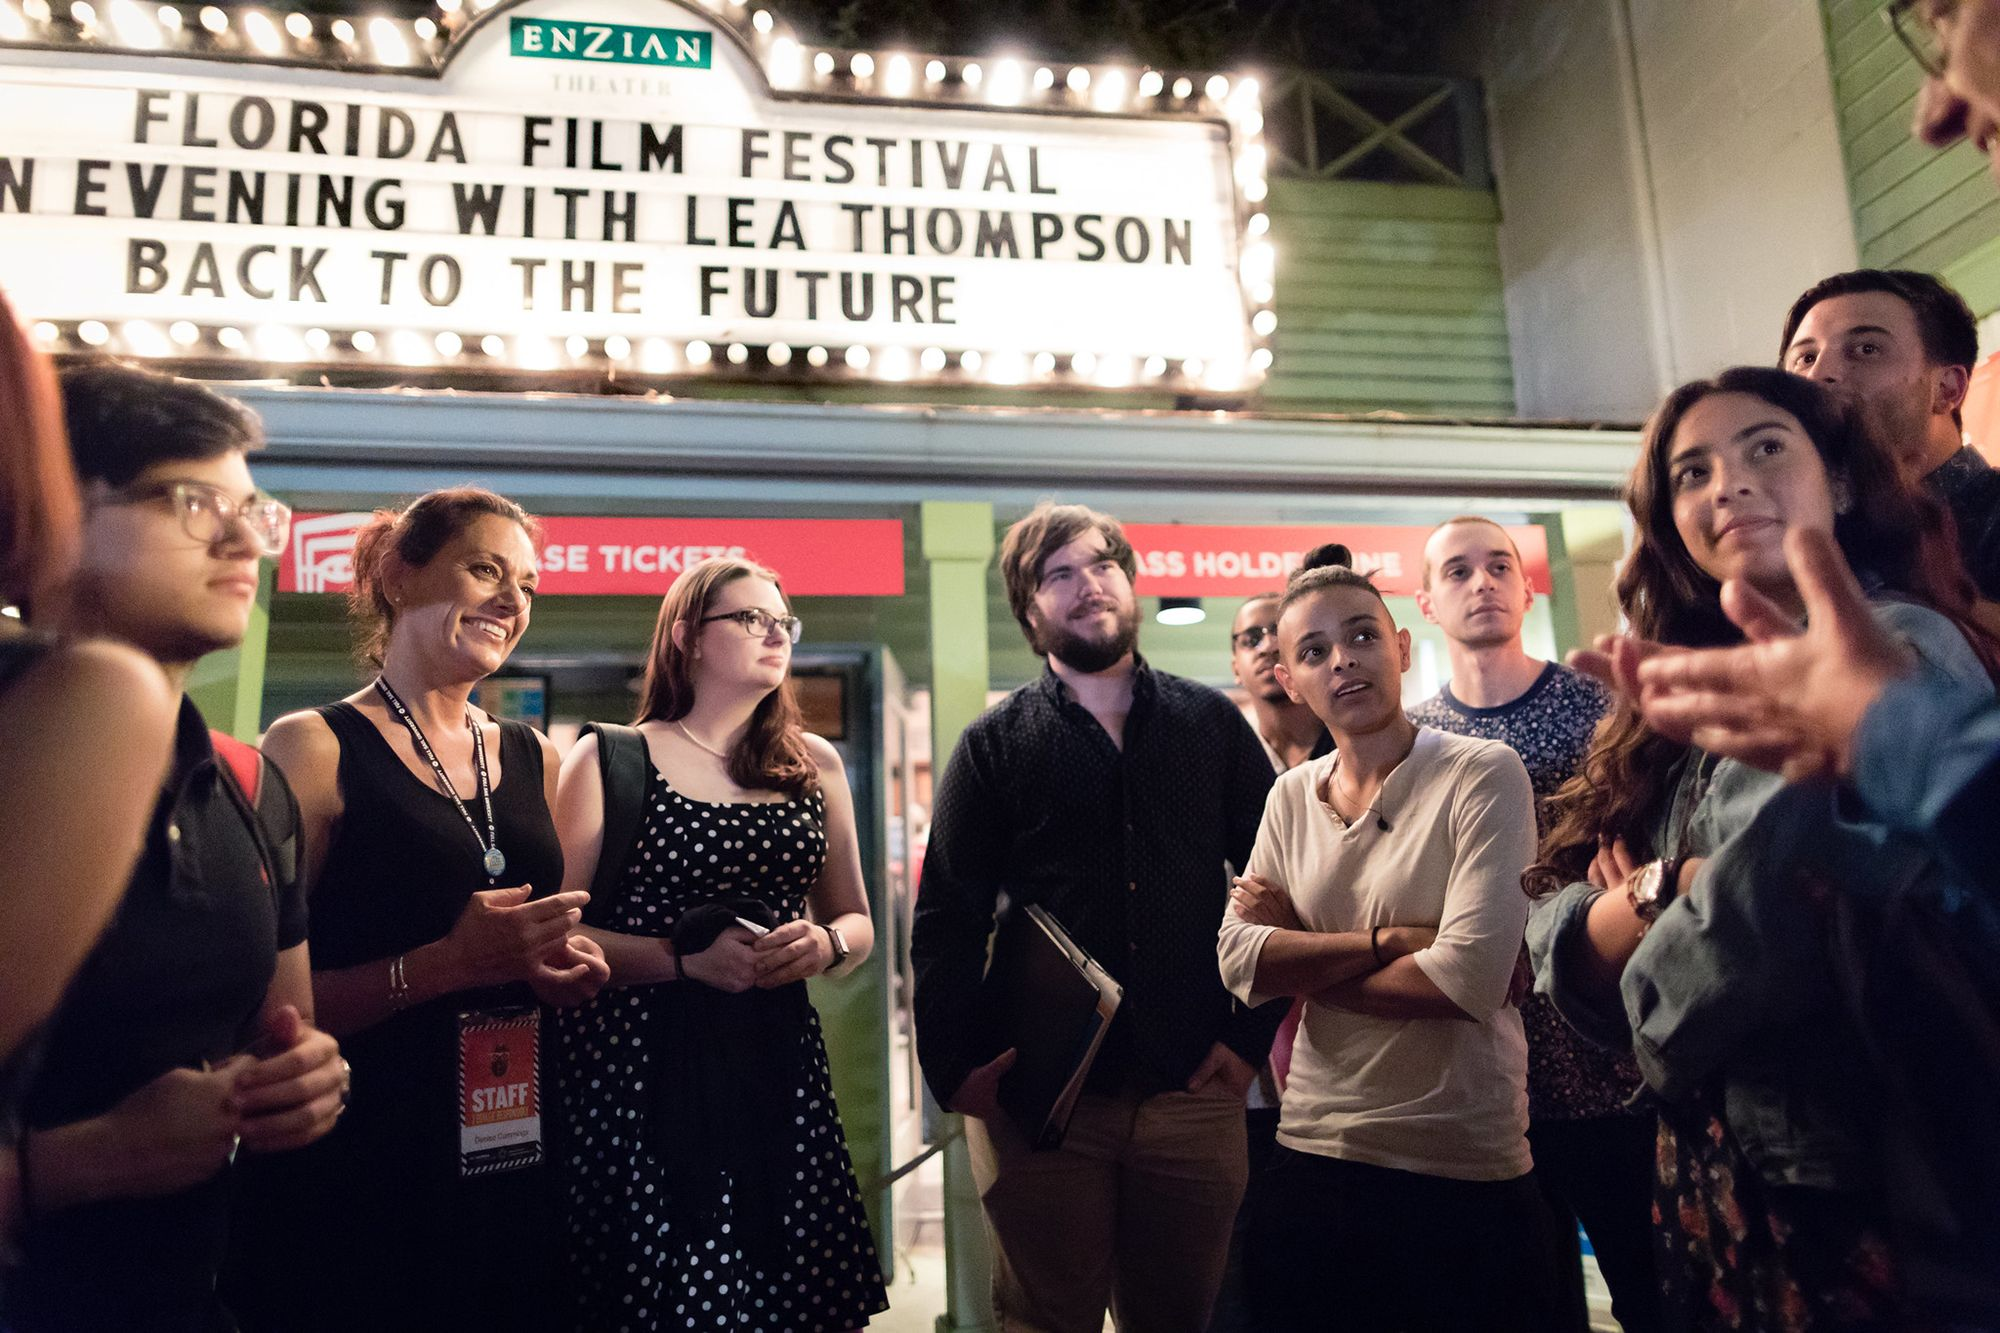 A group of students attends the Florida Film Festival at the Enzian Theater.